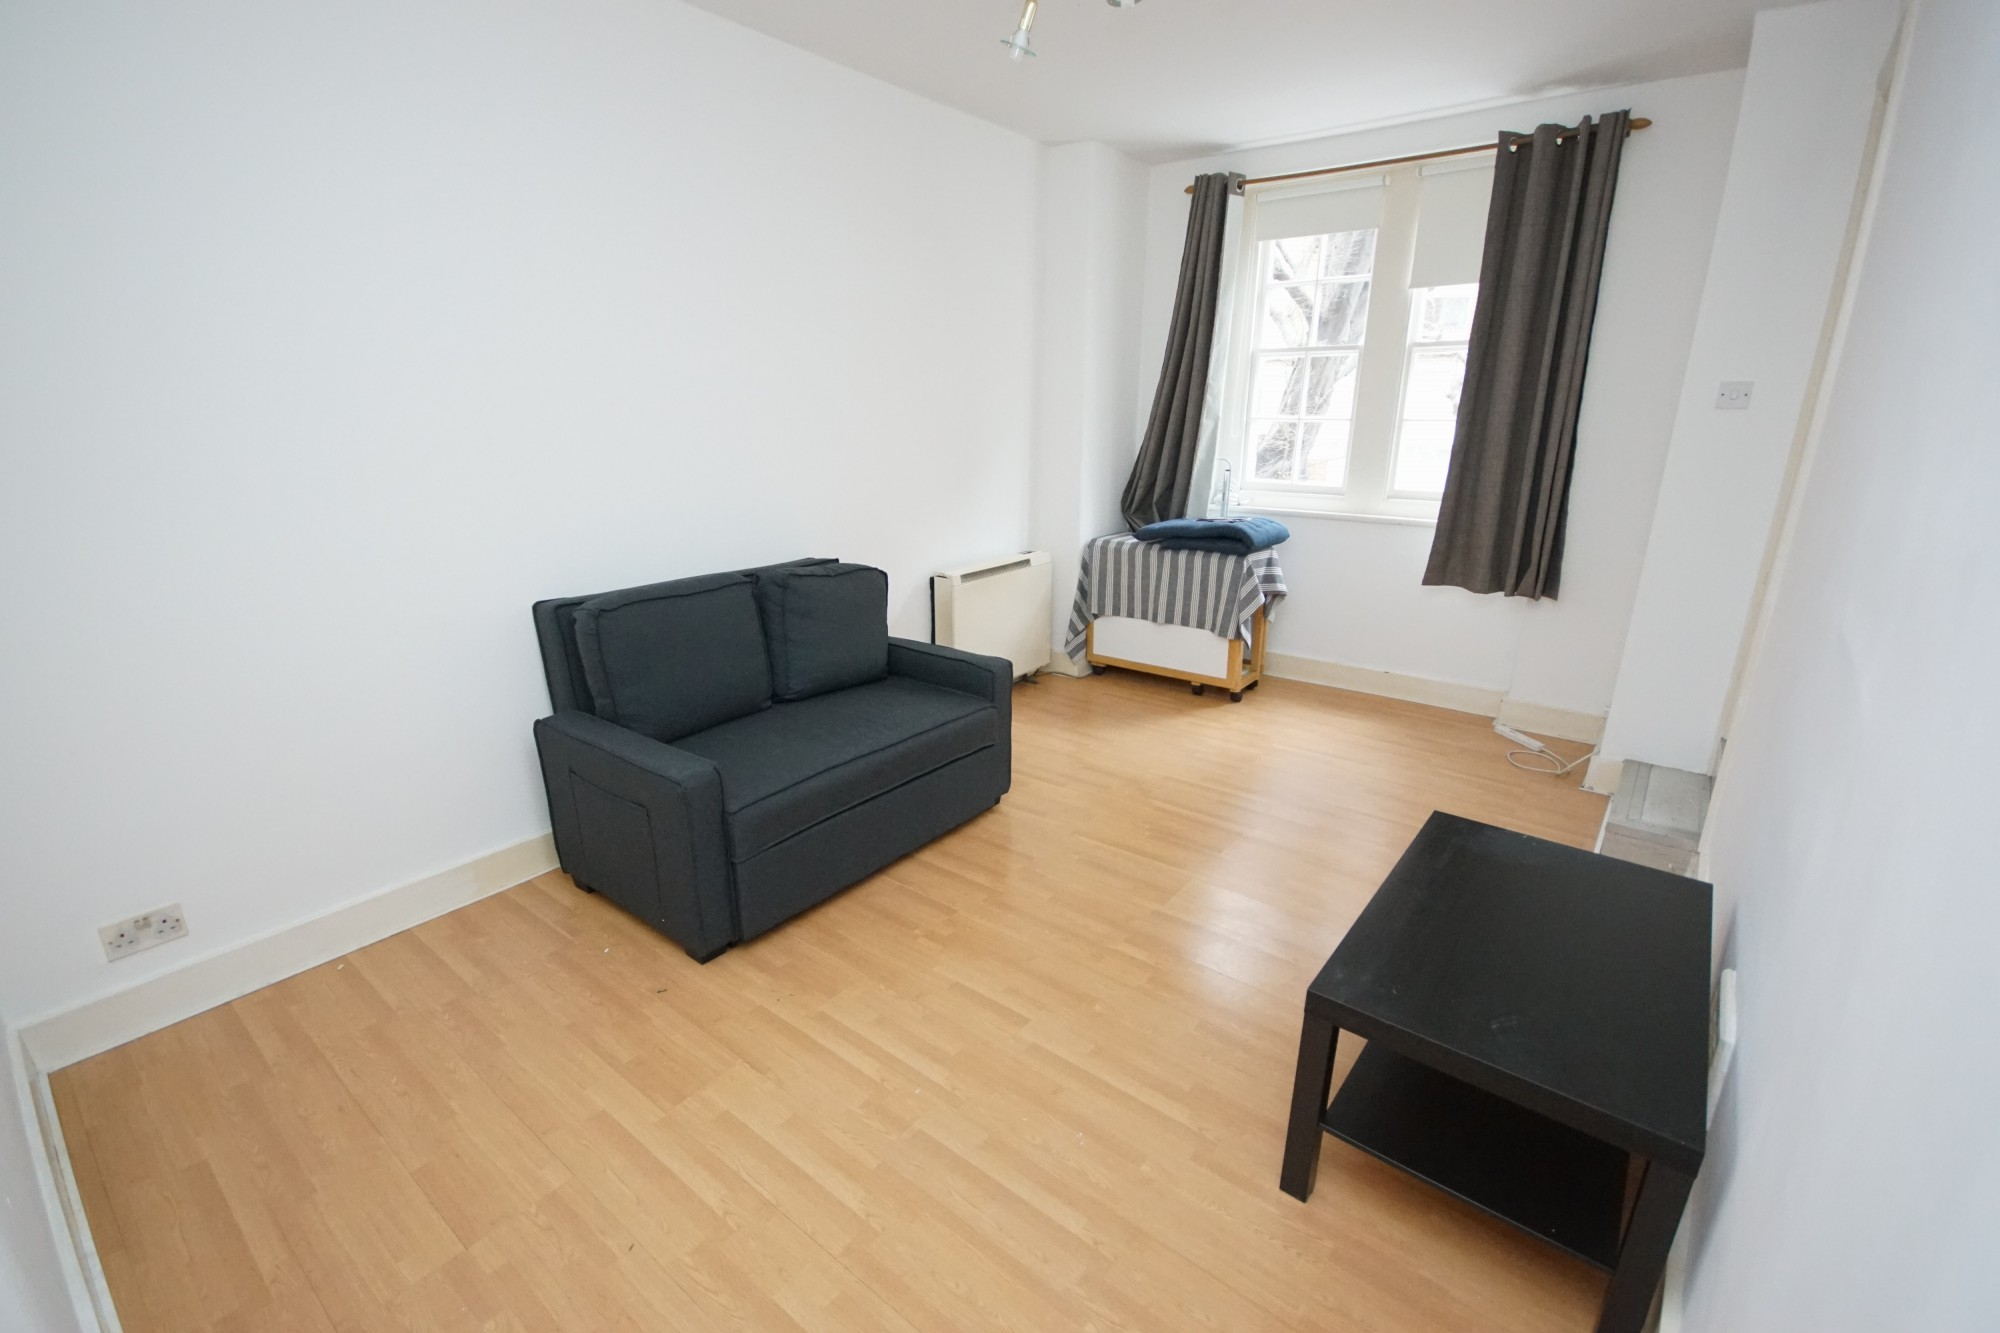 1 Bed Apartment Thanet Street Wc1h Bentley Co